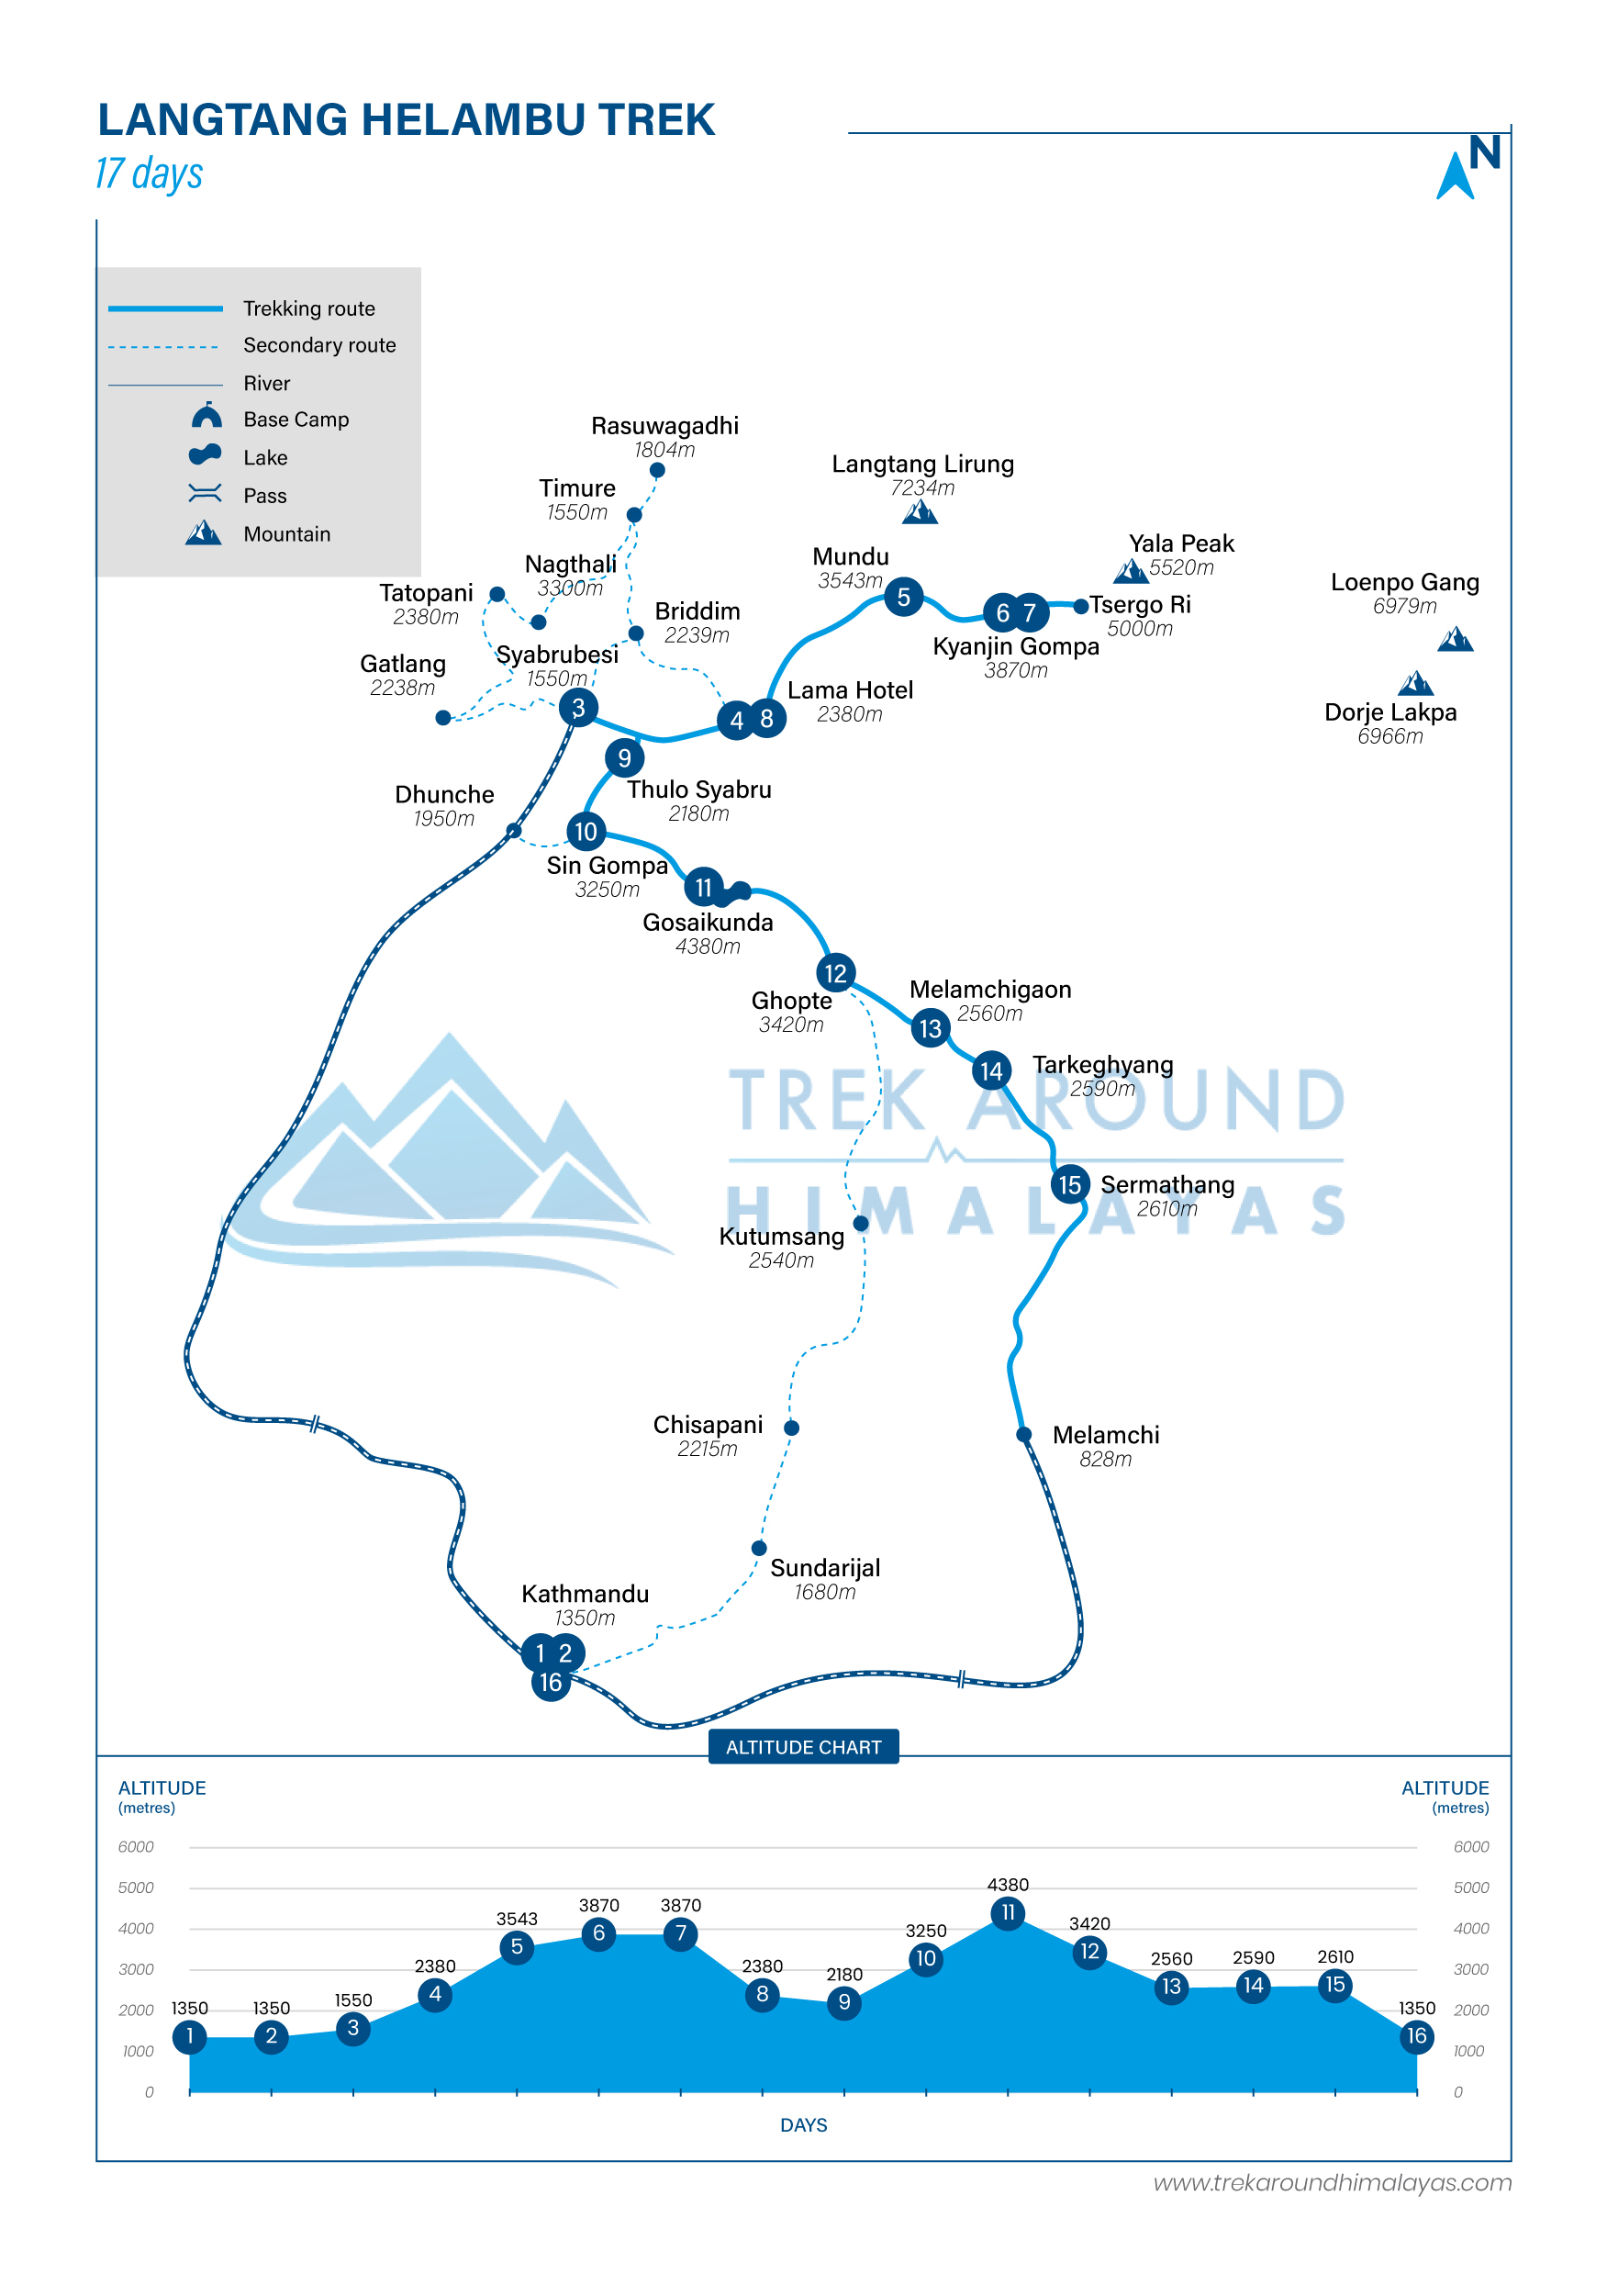 Route Map for Langtang Helambu Trek | Adventure Altitude